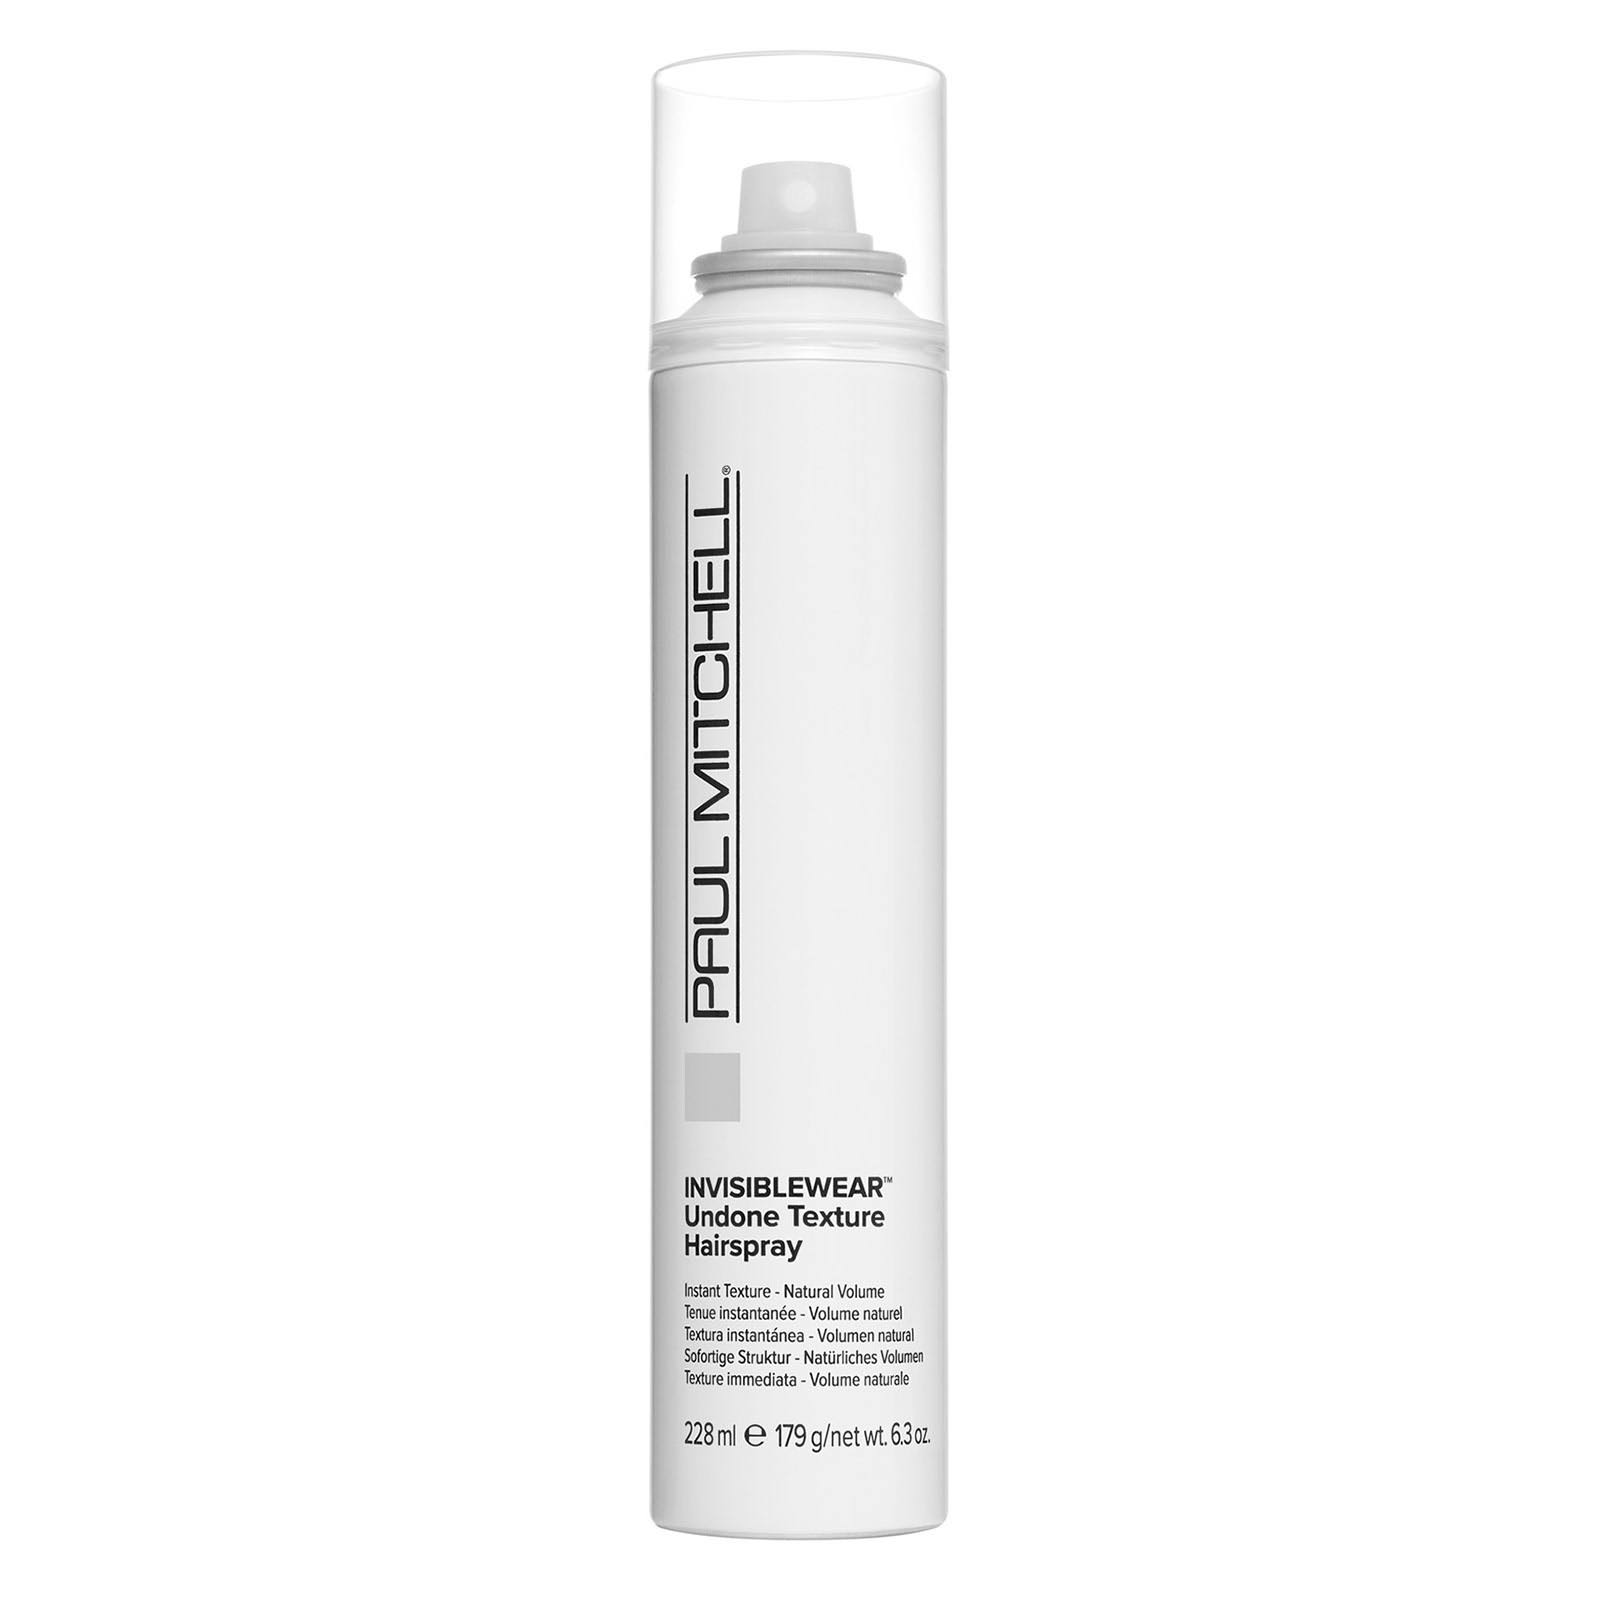 Paul Mitchell Invisiblewear Undone Texture Hairspray - 6.3oz